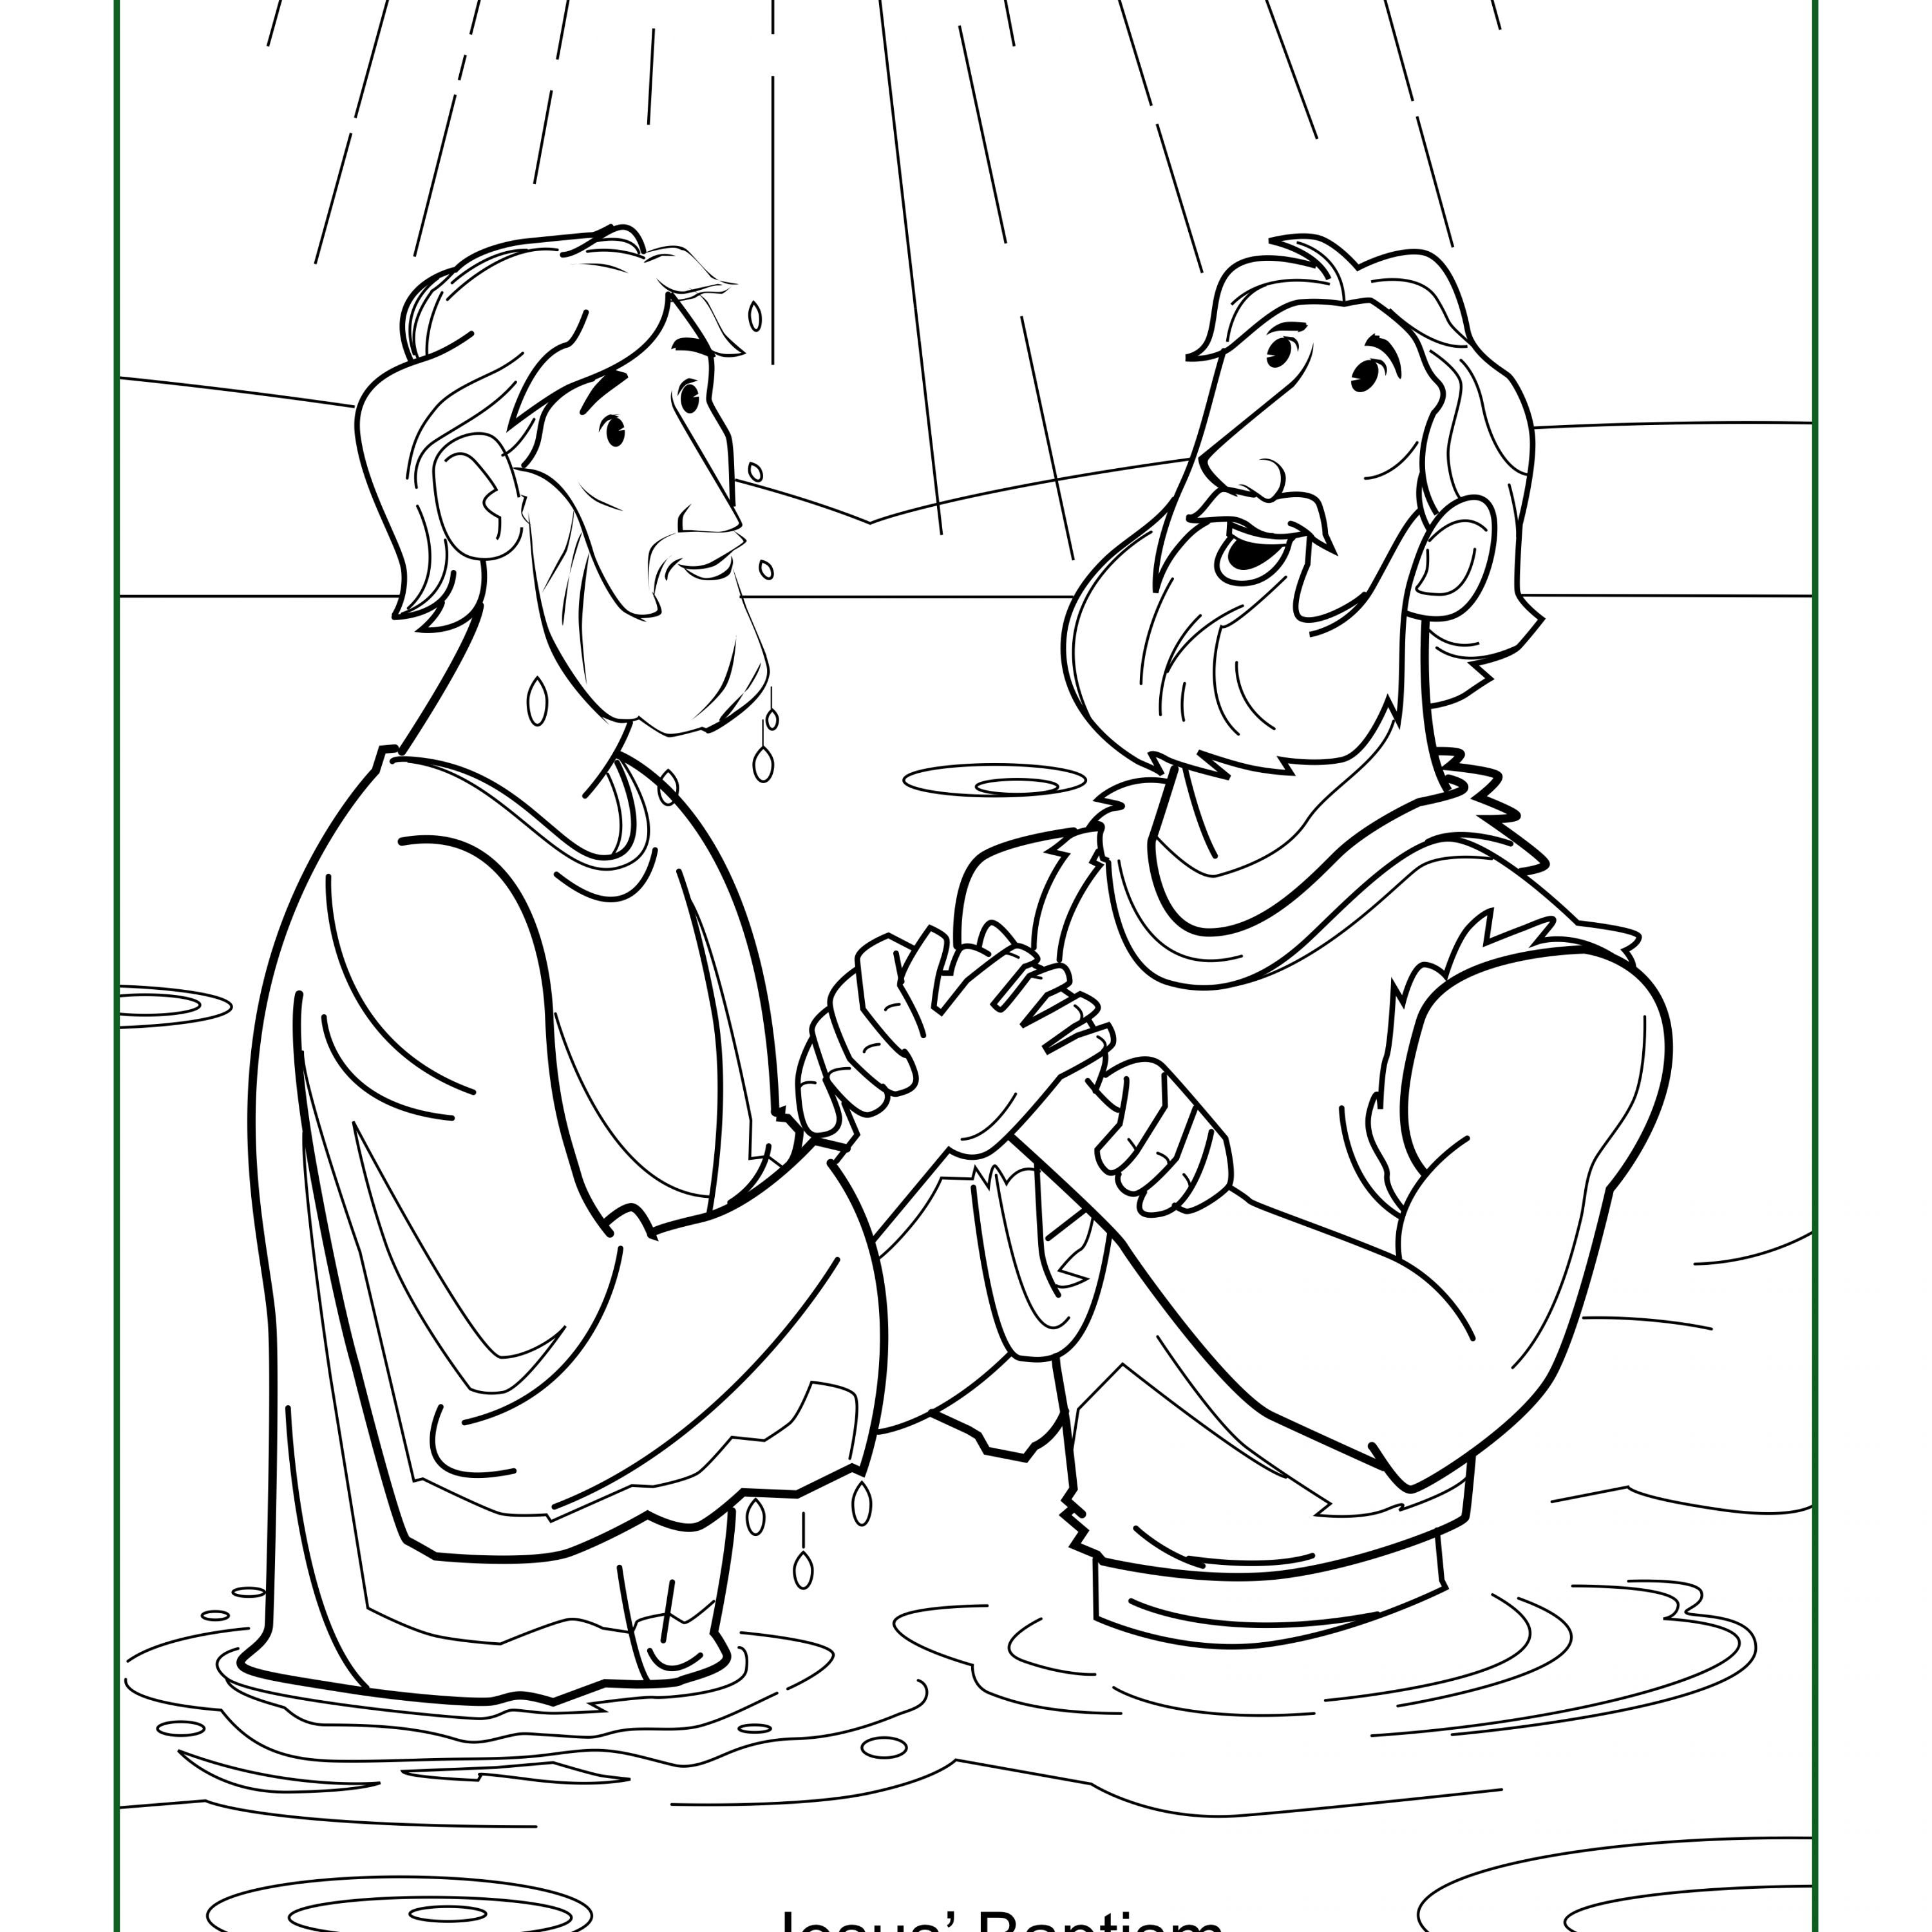 Baptism Colouring Sheets Coloring Pages for Kids Adult Printables Printable Of Coloring Pages Thanksgiving Turkey Baptism Page Contemporary Style Download